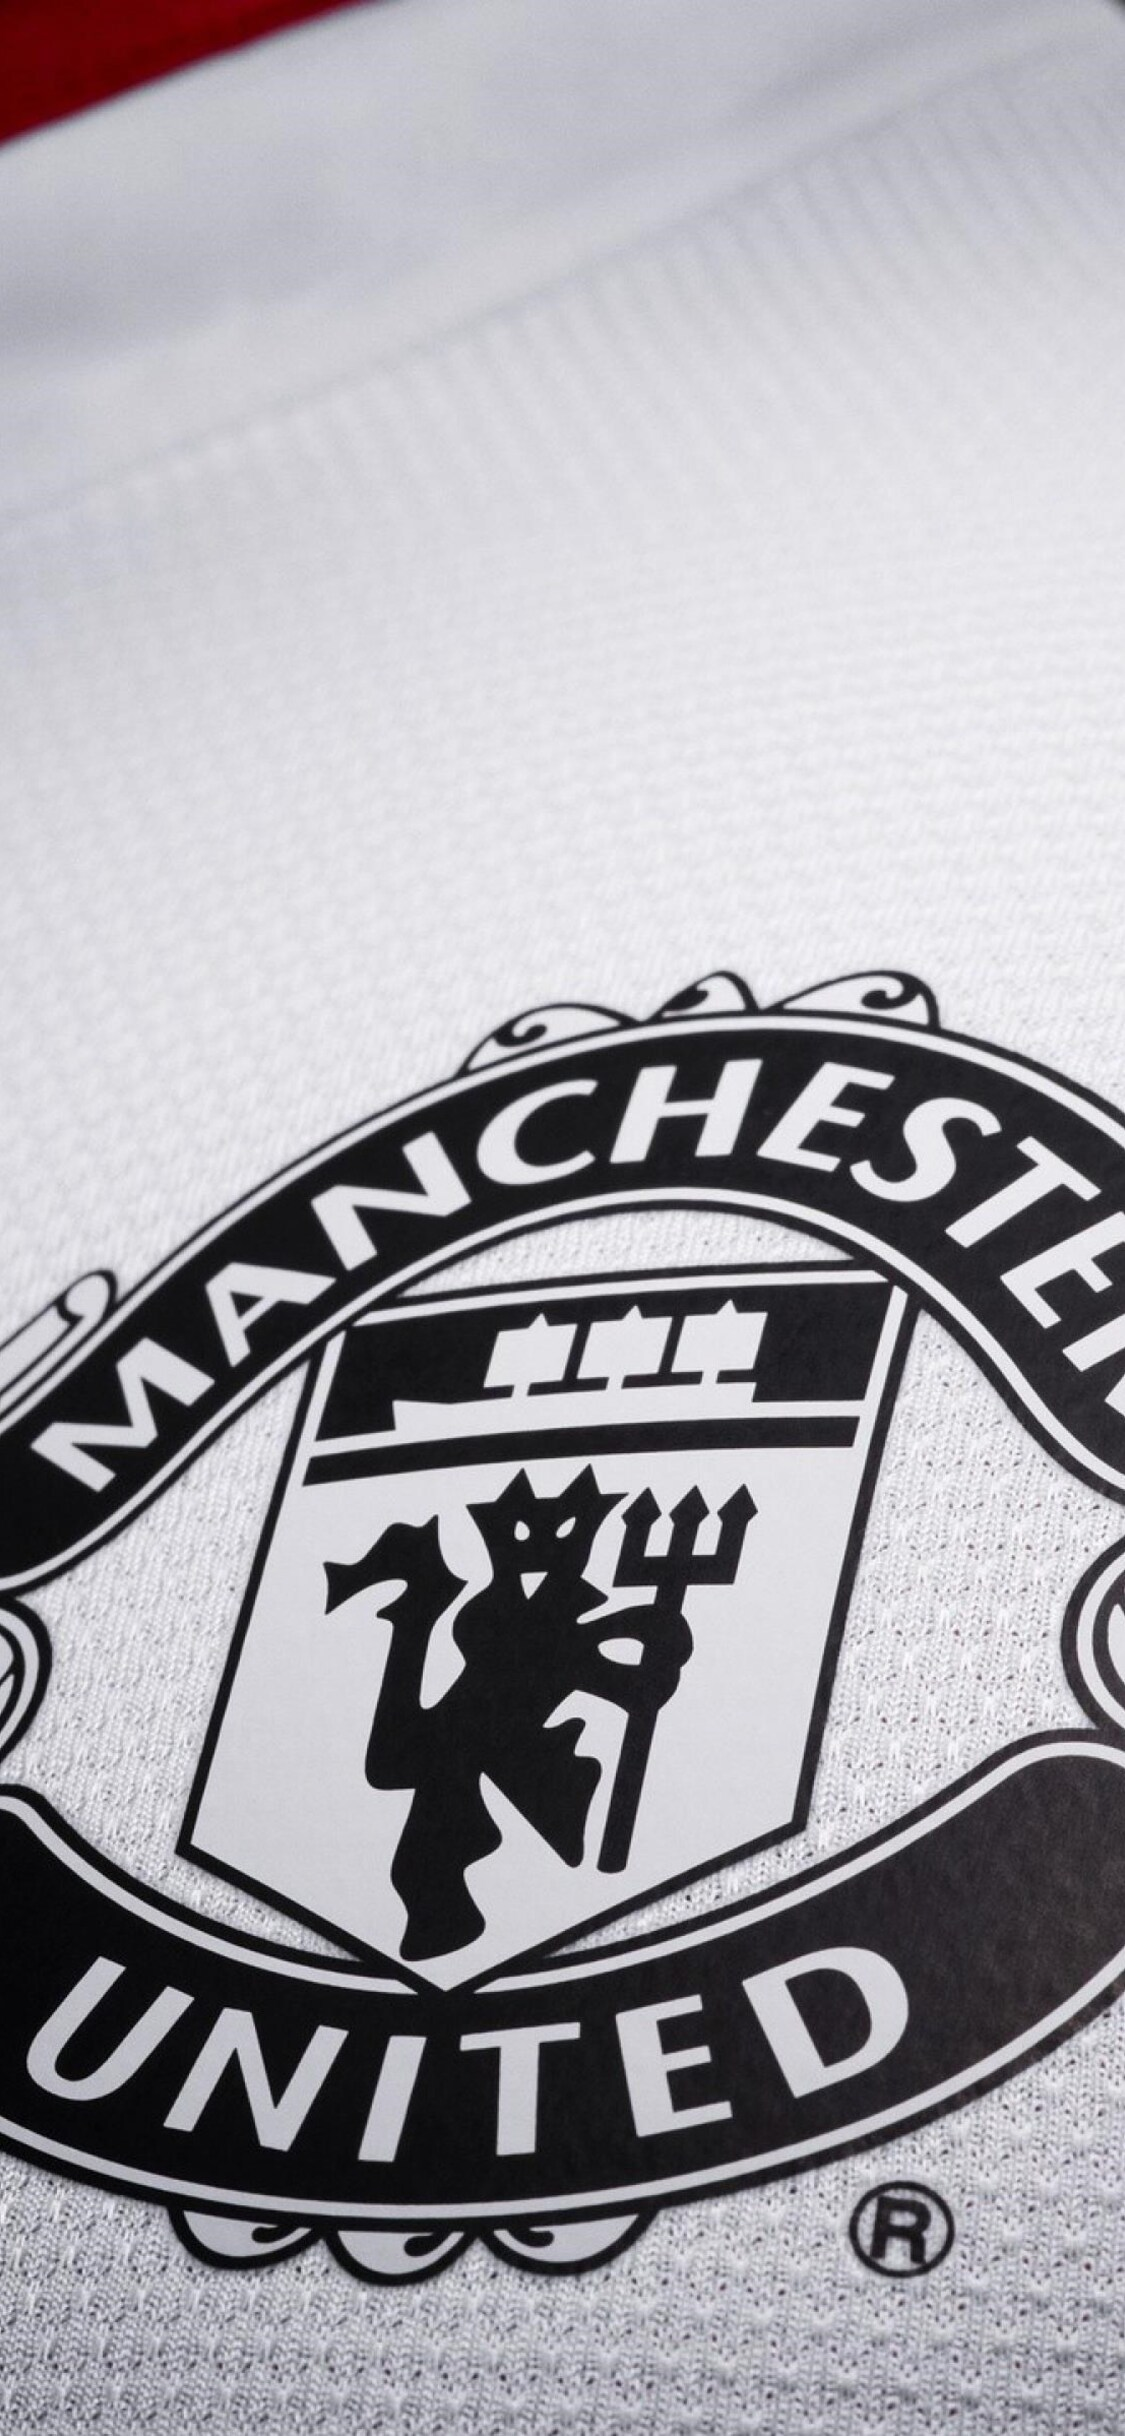 1125x2436 Manchester United Logo Hd Iphone Xsiphone 10